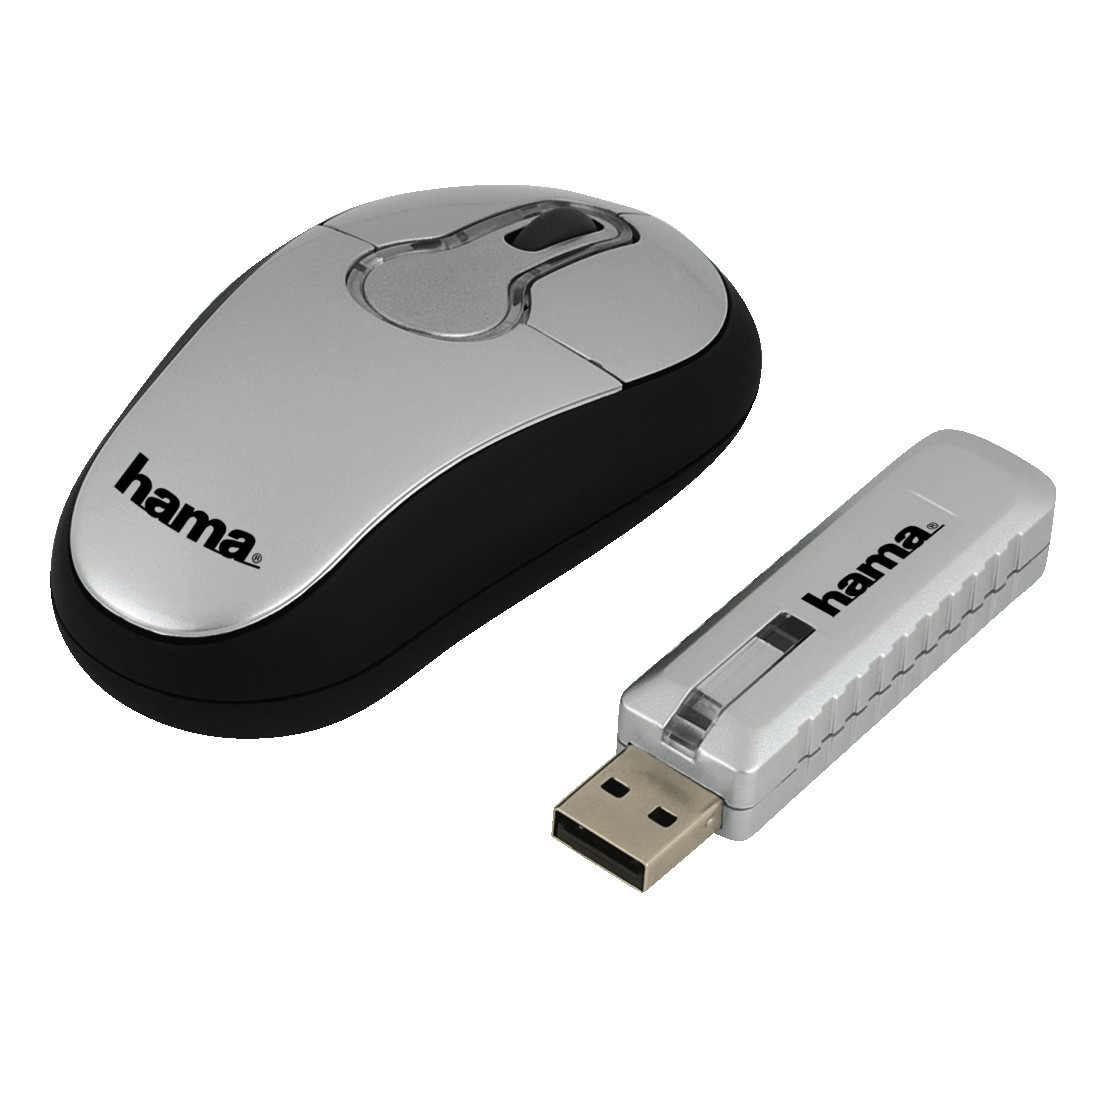 HAMA RF Optical Notebook Mouse Windows 8 Driver Download